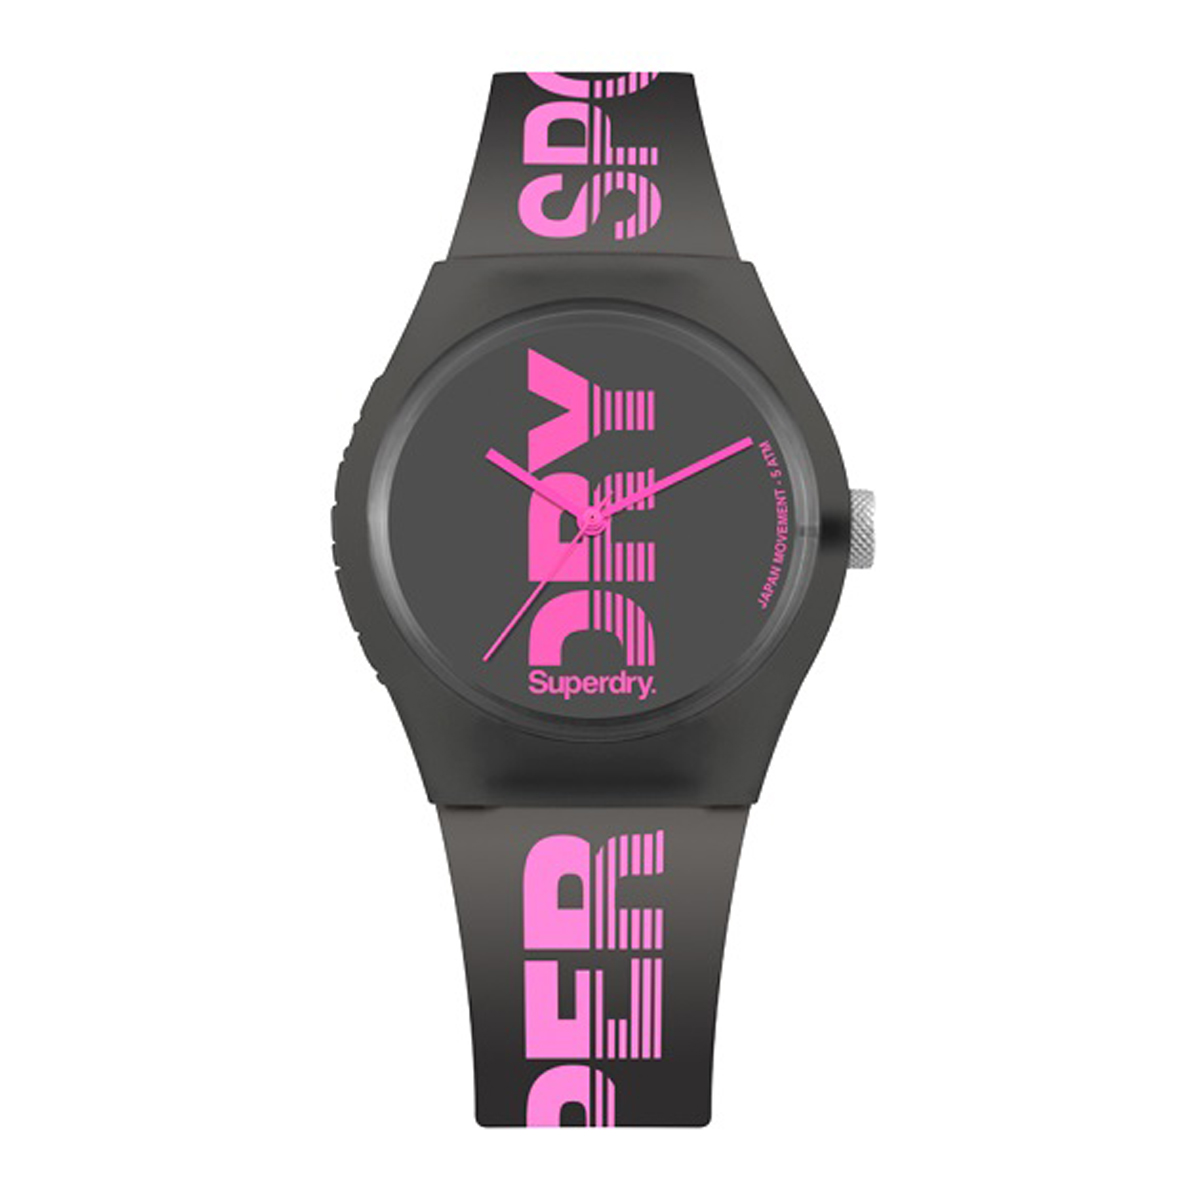 Montre silicone \'Superdry\' noir rose - 45 mm - [P9934]